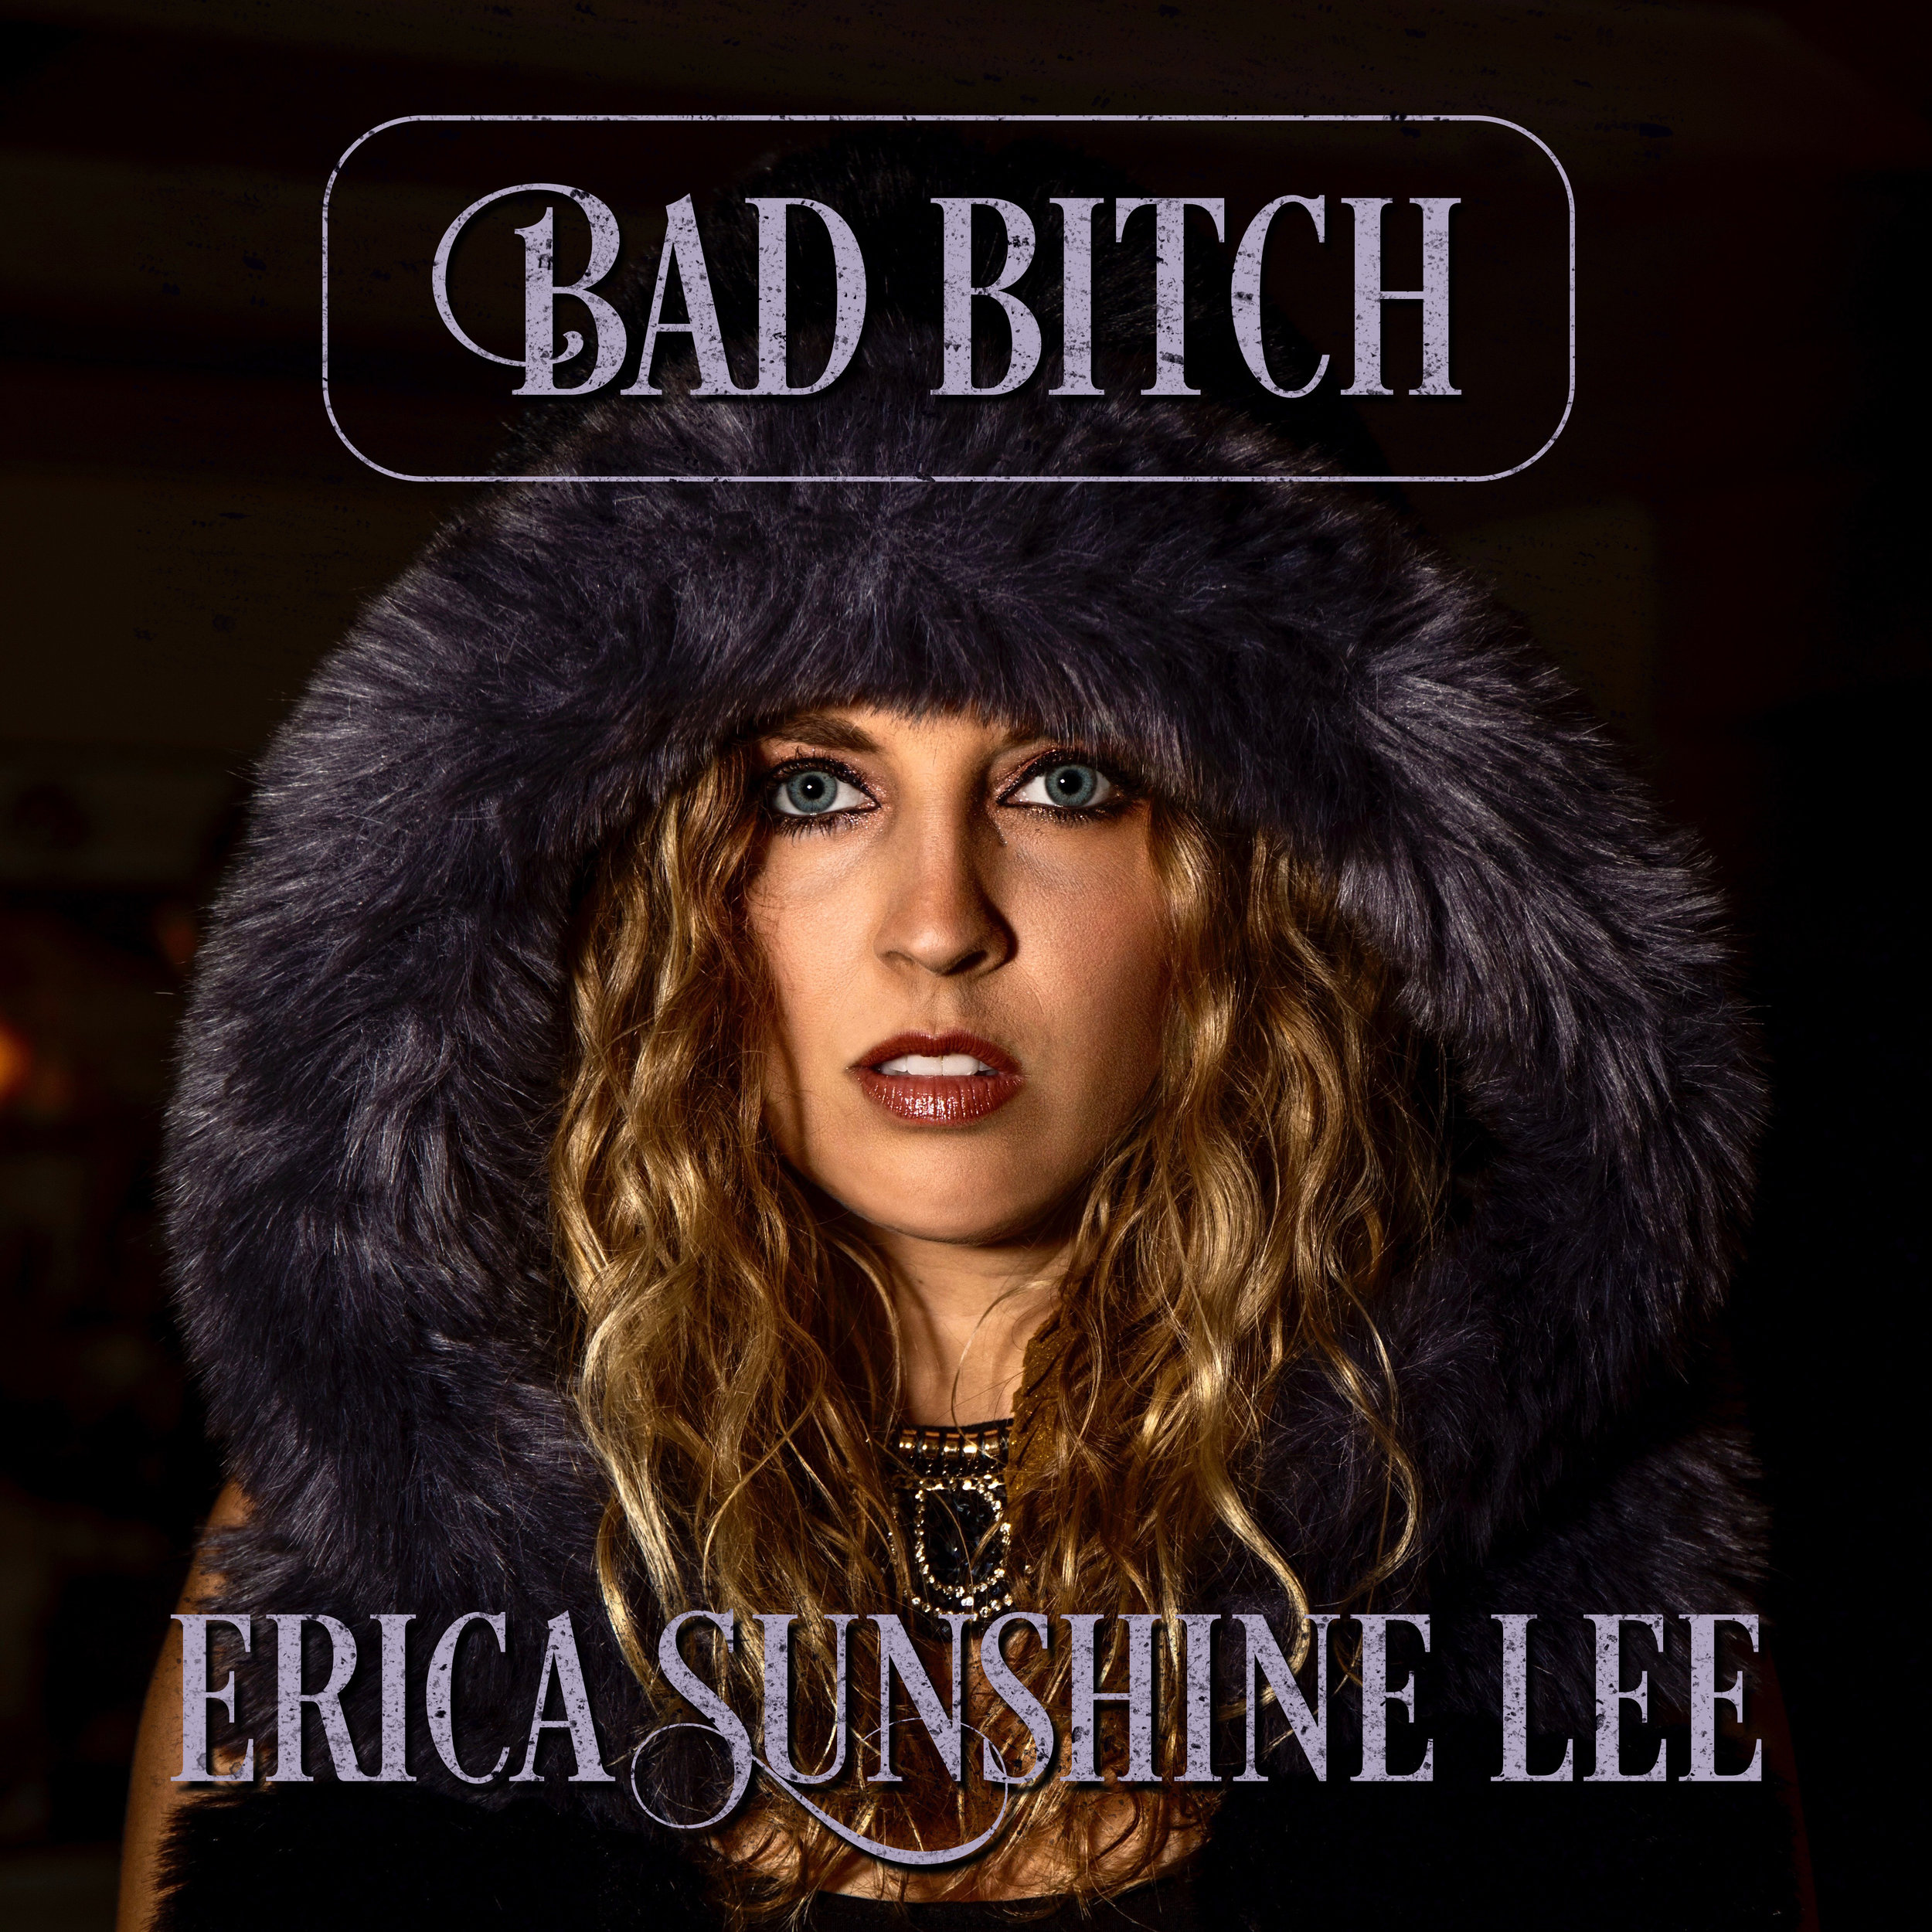 Bad Bitch itunes album cover.jpg